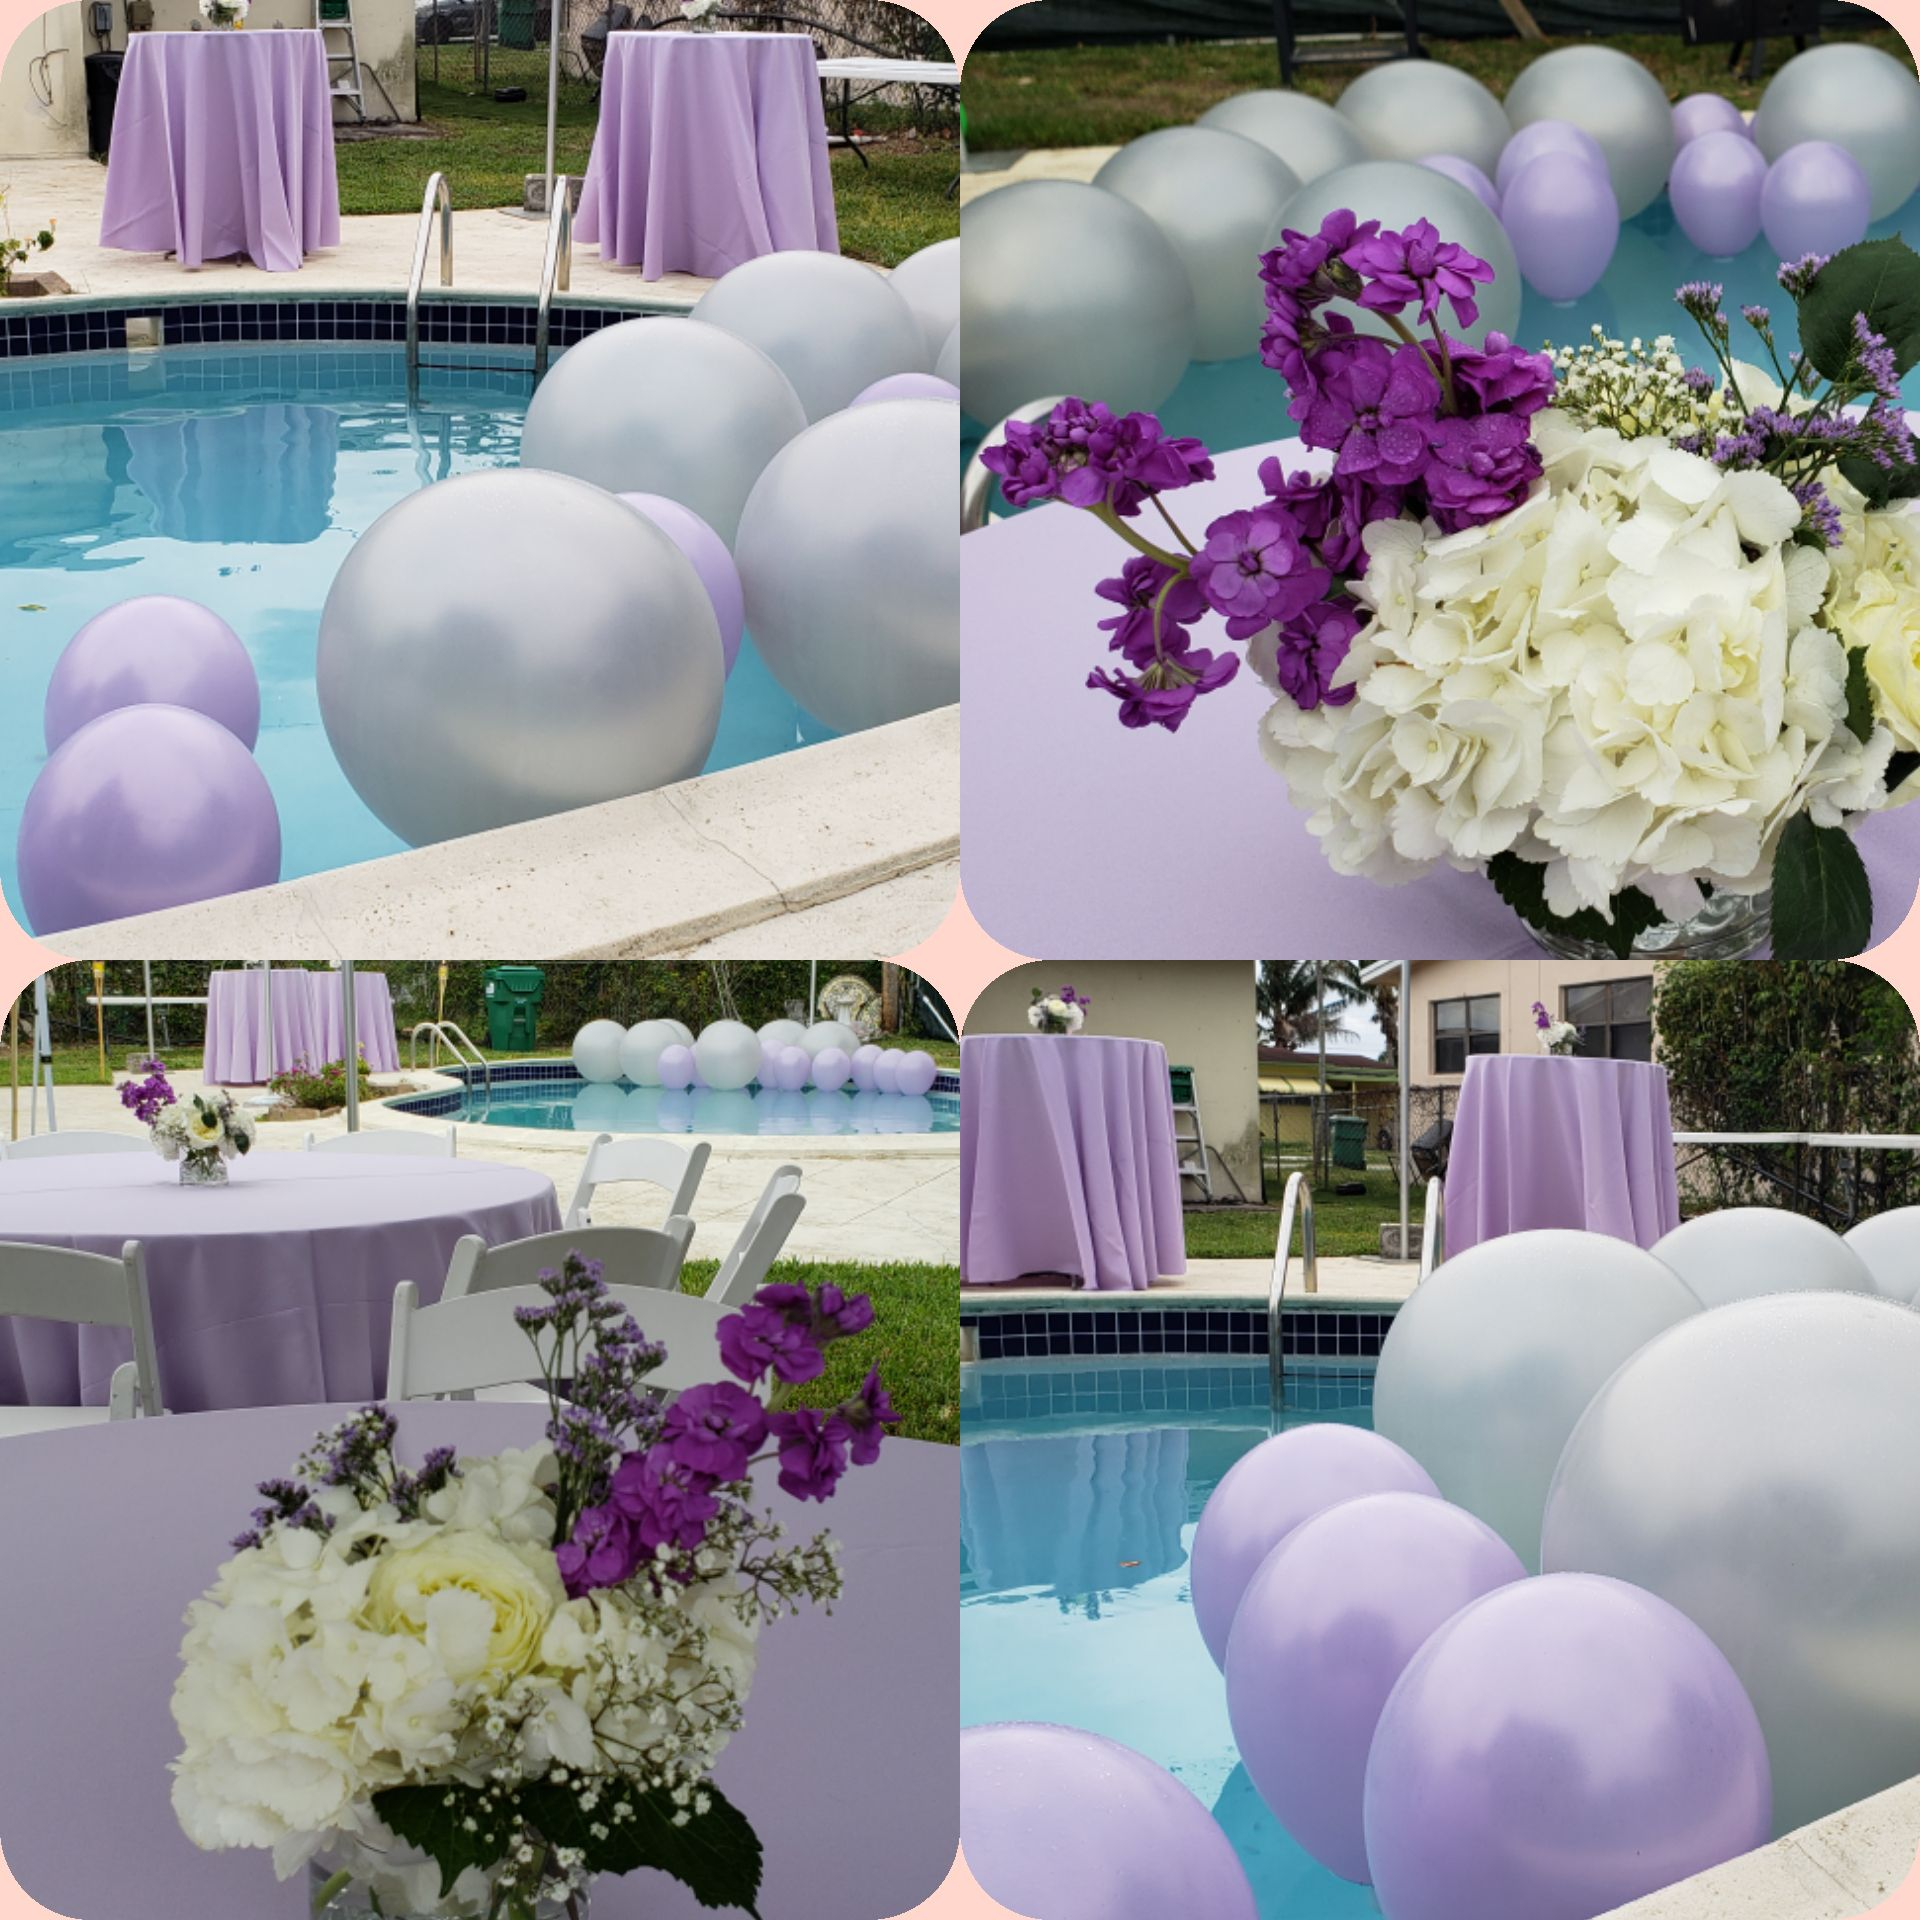 Backyard Pool Party Decoration Ideas With Huge Balloons In The Swimming Pool White Backyard Pool Parties Lavender Flower Centerpieces Pool Party Decorations